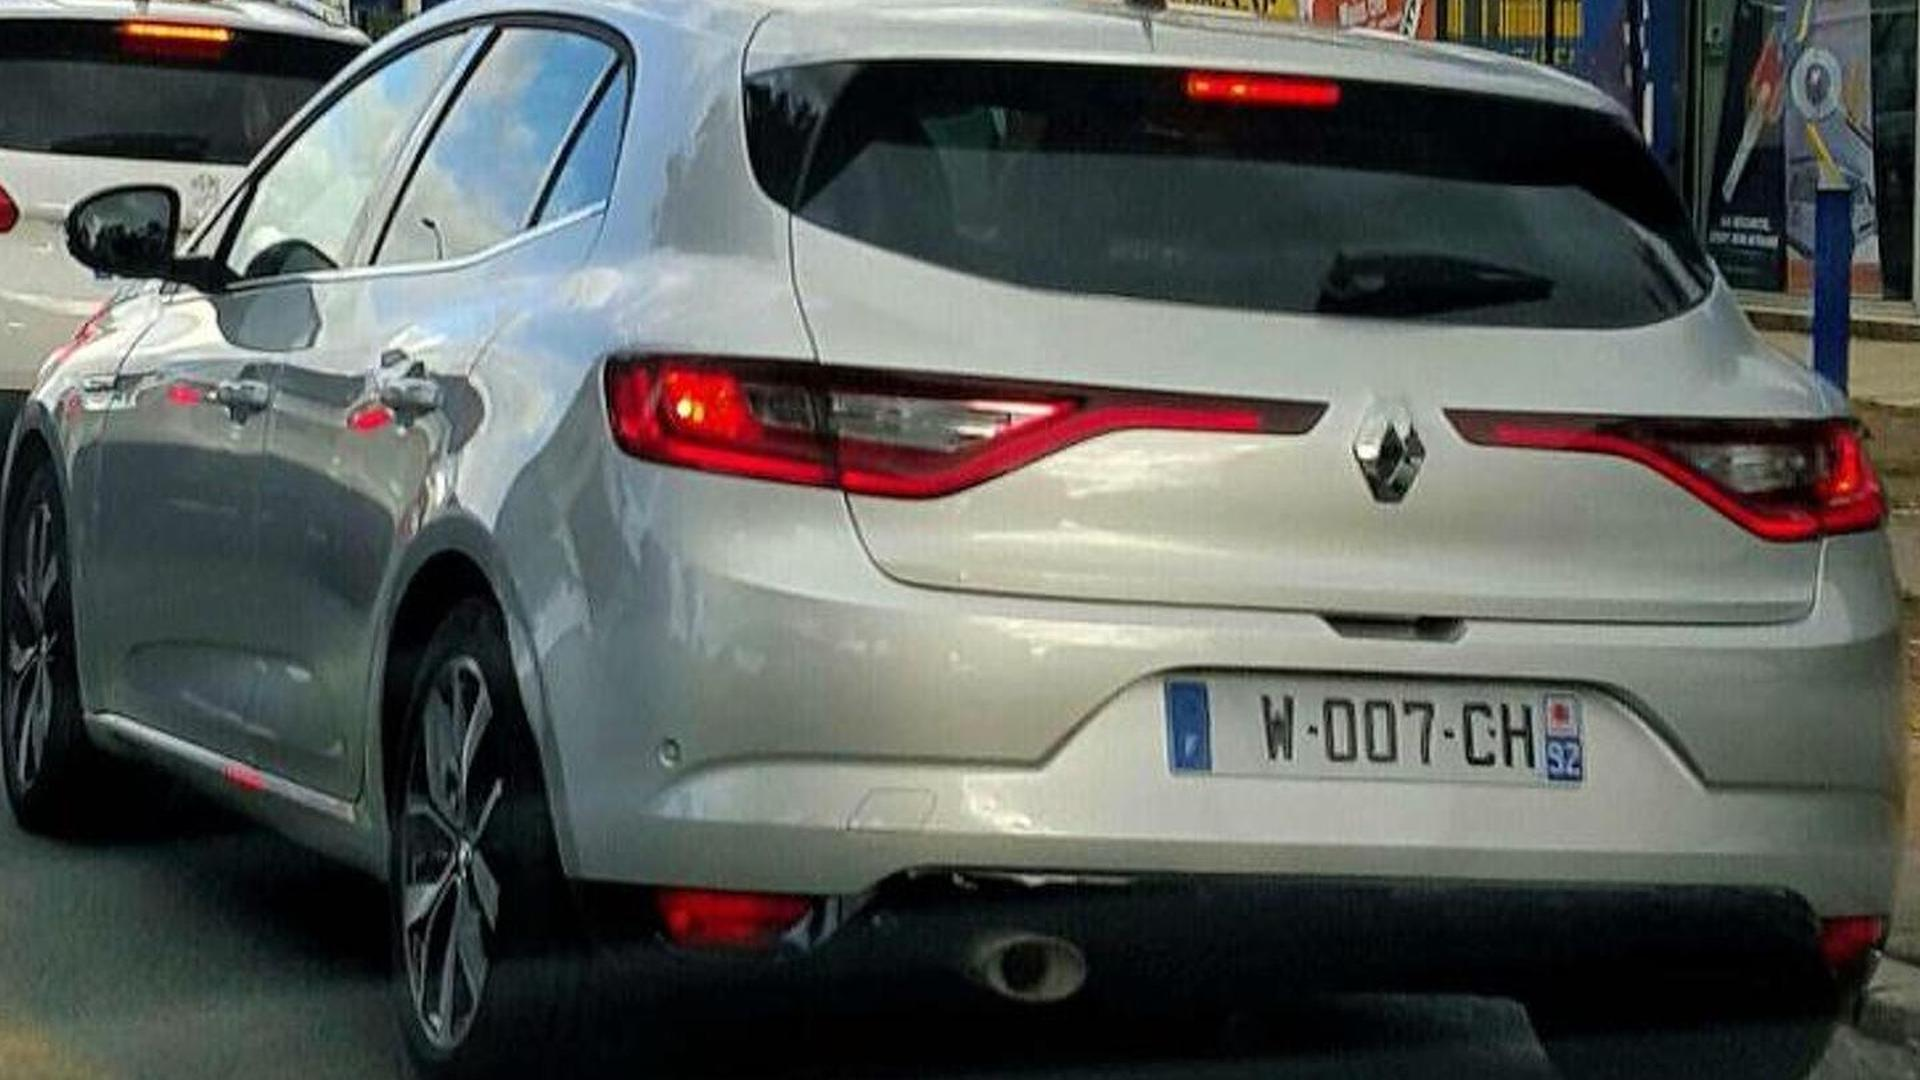 2016 Renault Megane spotted on the road